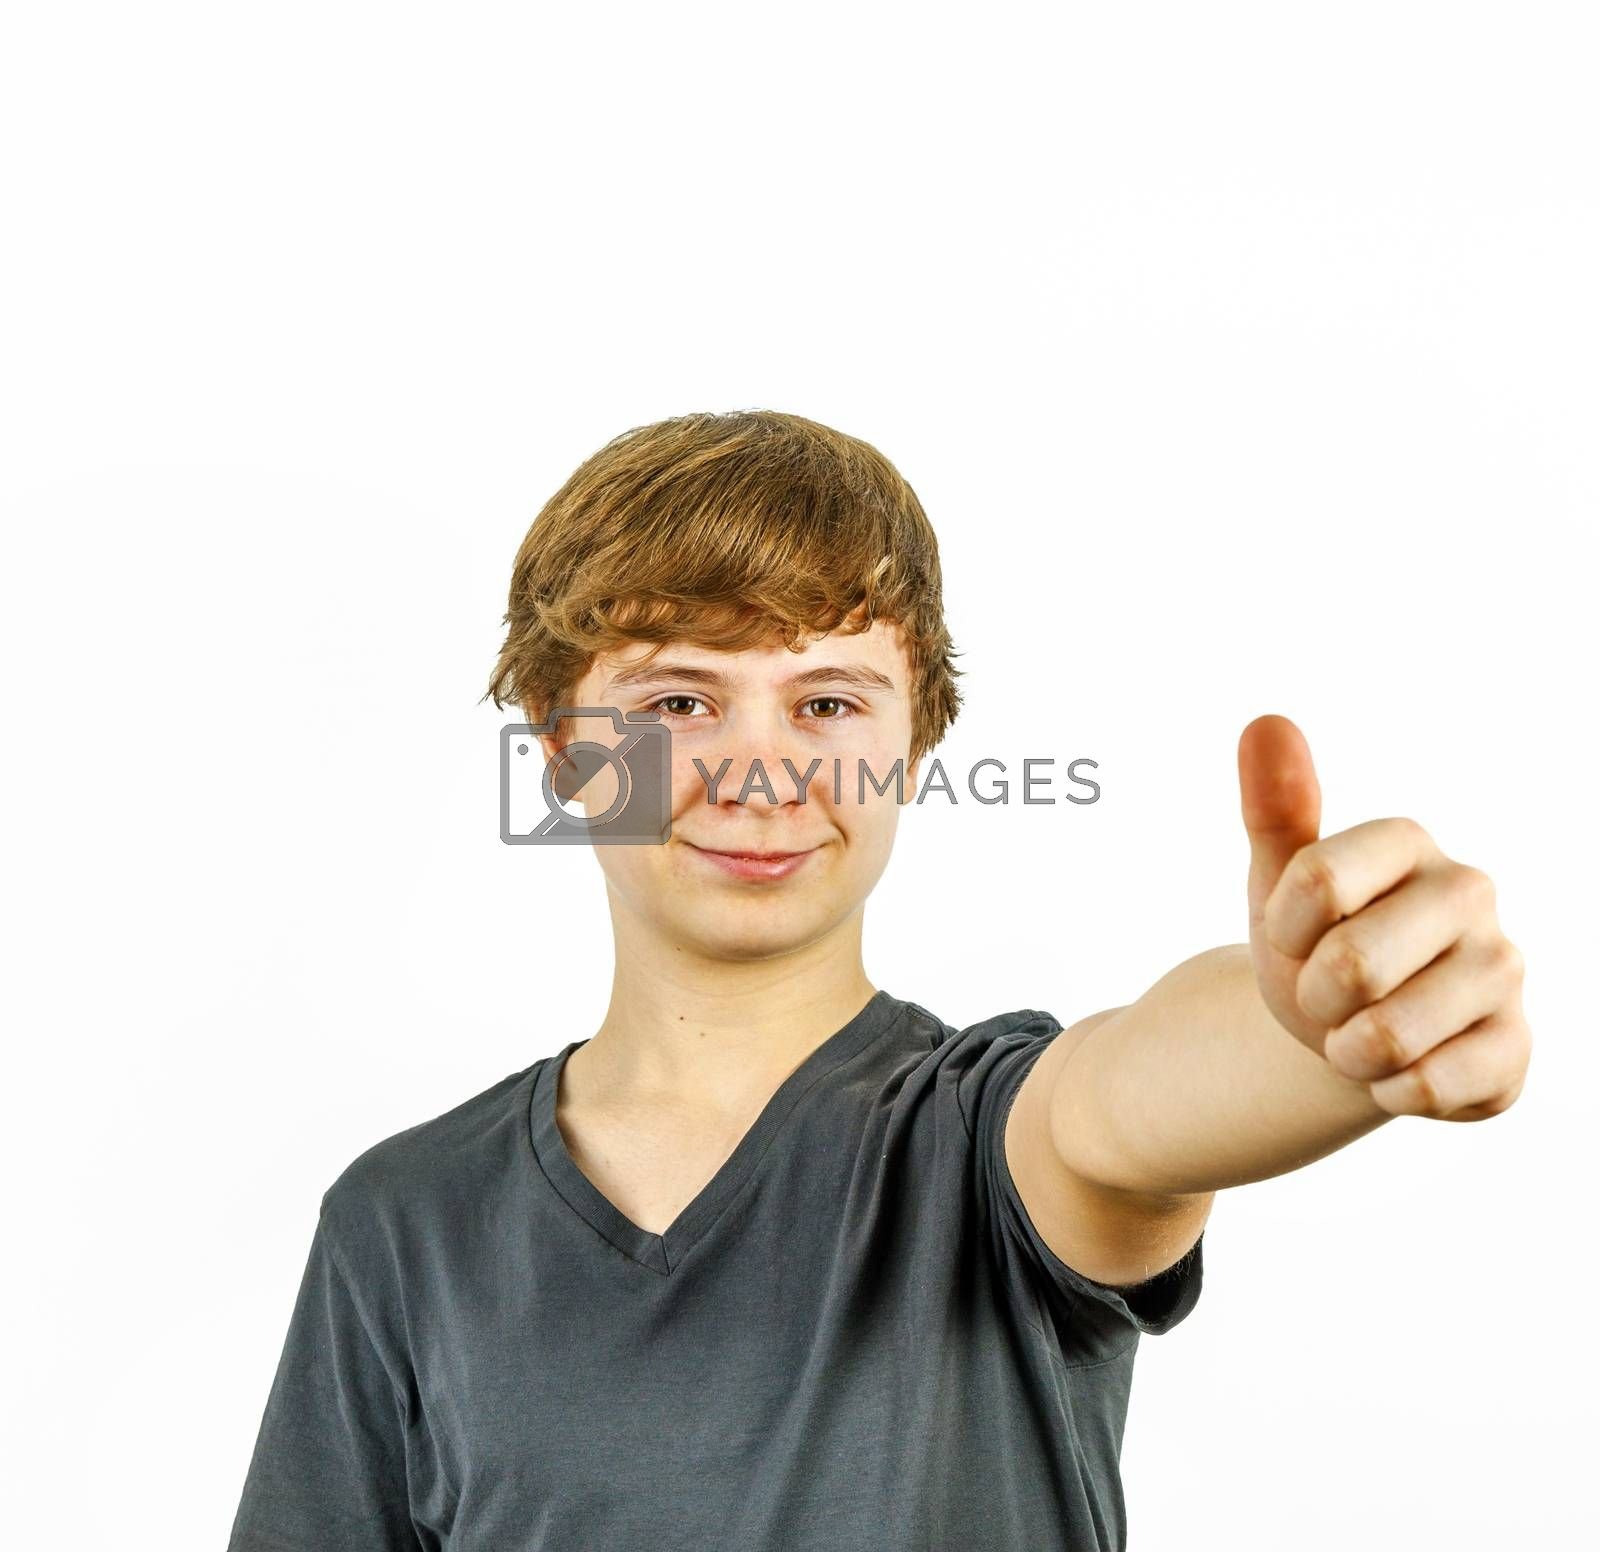 Teenage boy smiling showing thumbs up sign close up